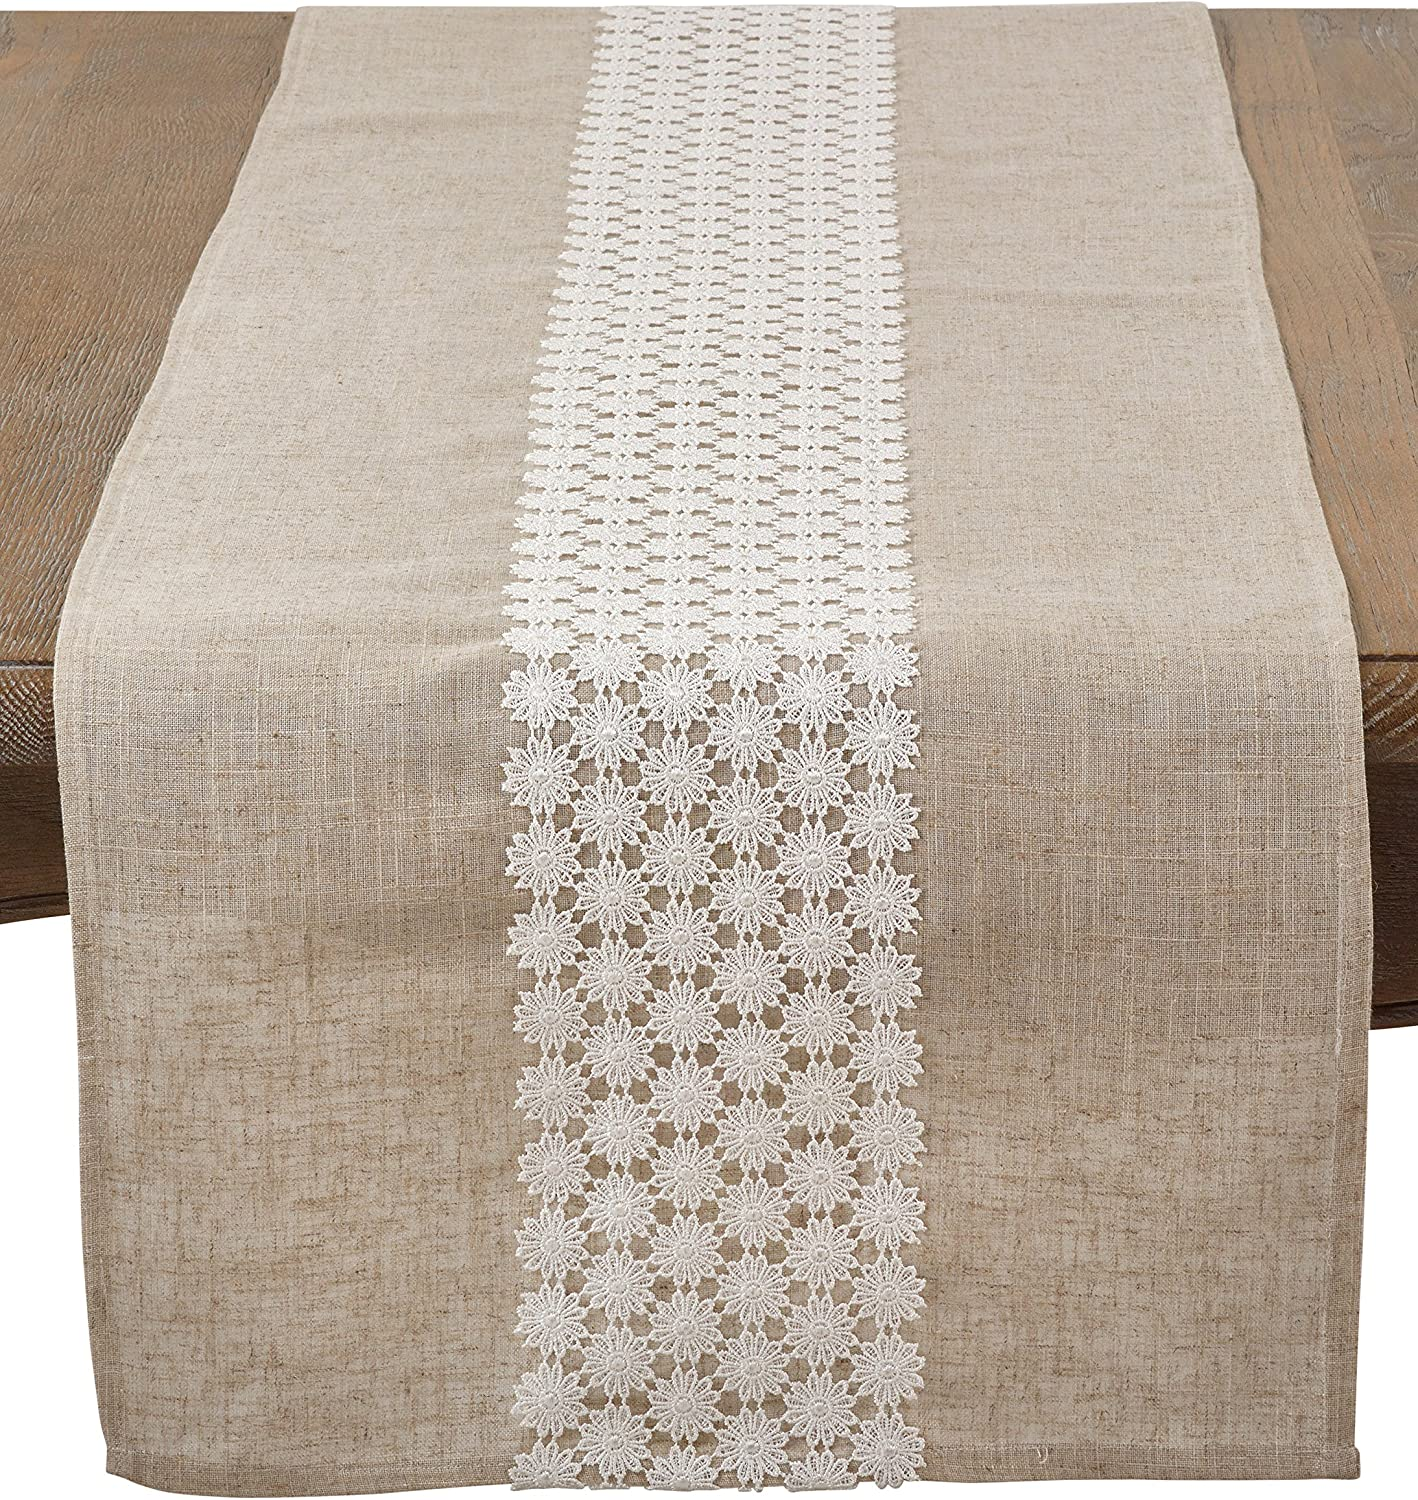 "SARO LIFESTYLE Daisy Lace Design Linen Blend Table Runner, 16"" x 72"", Natural"